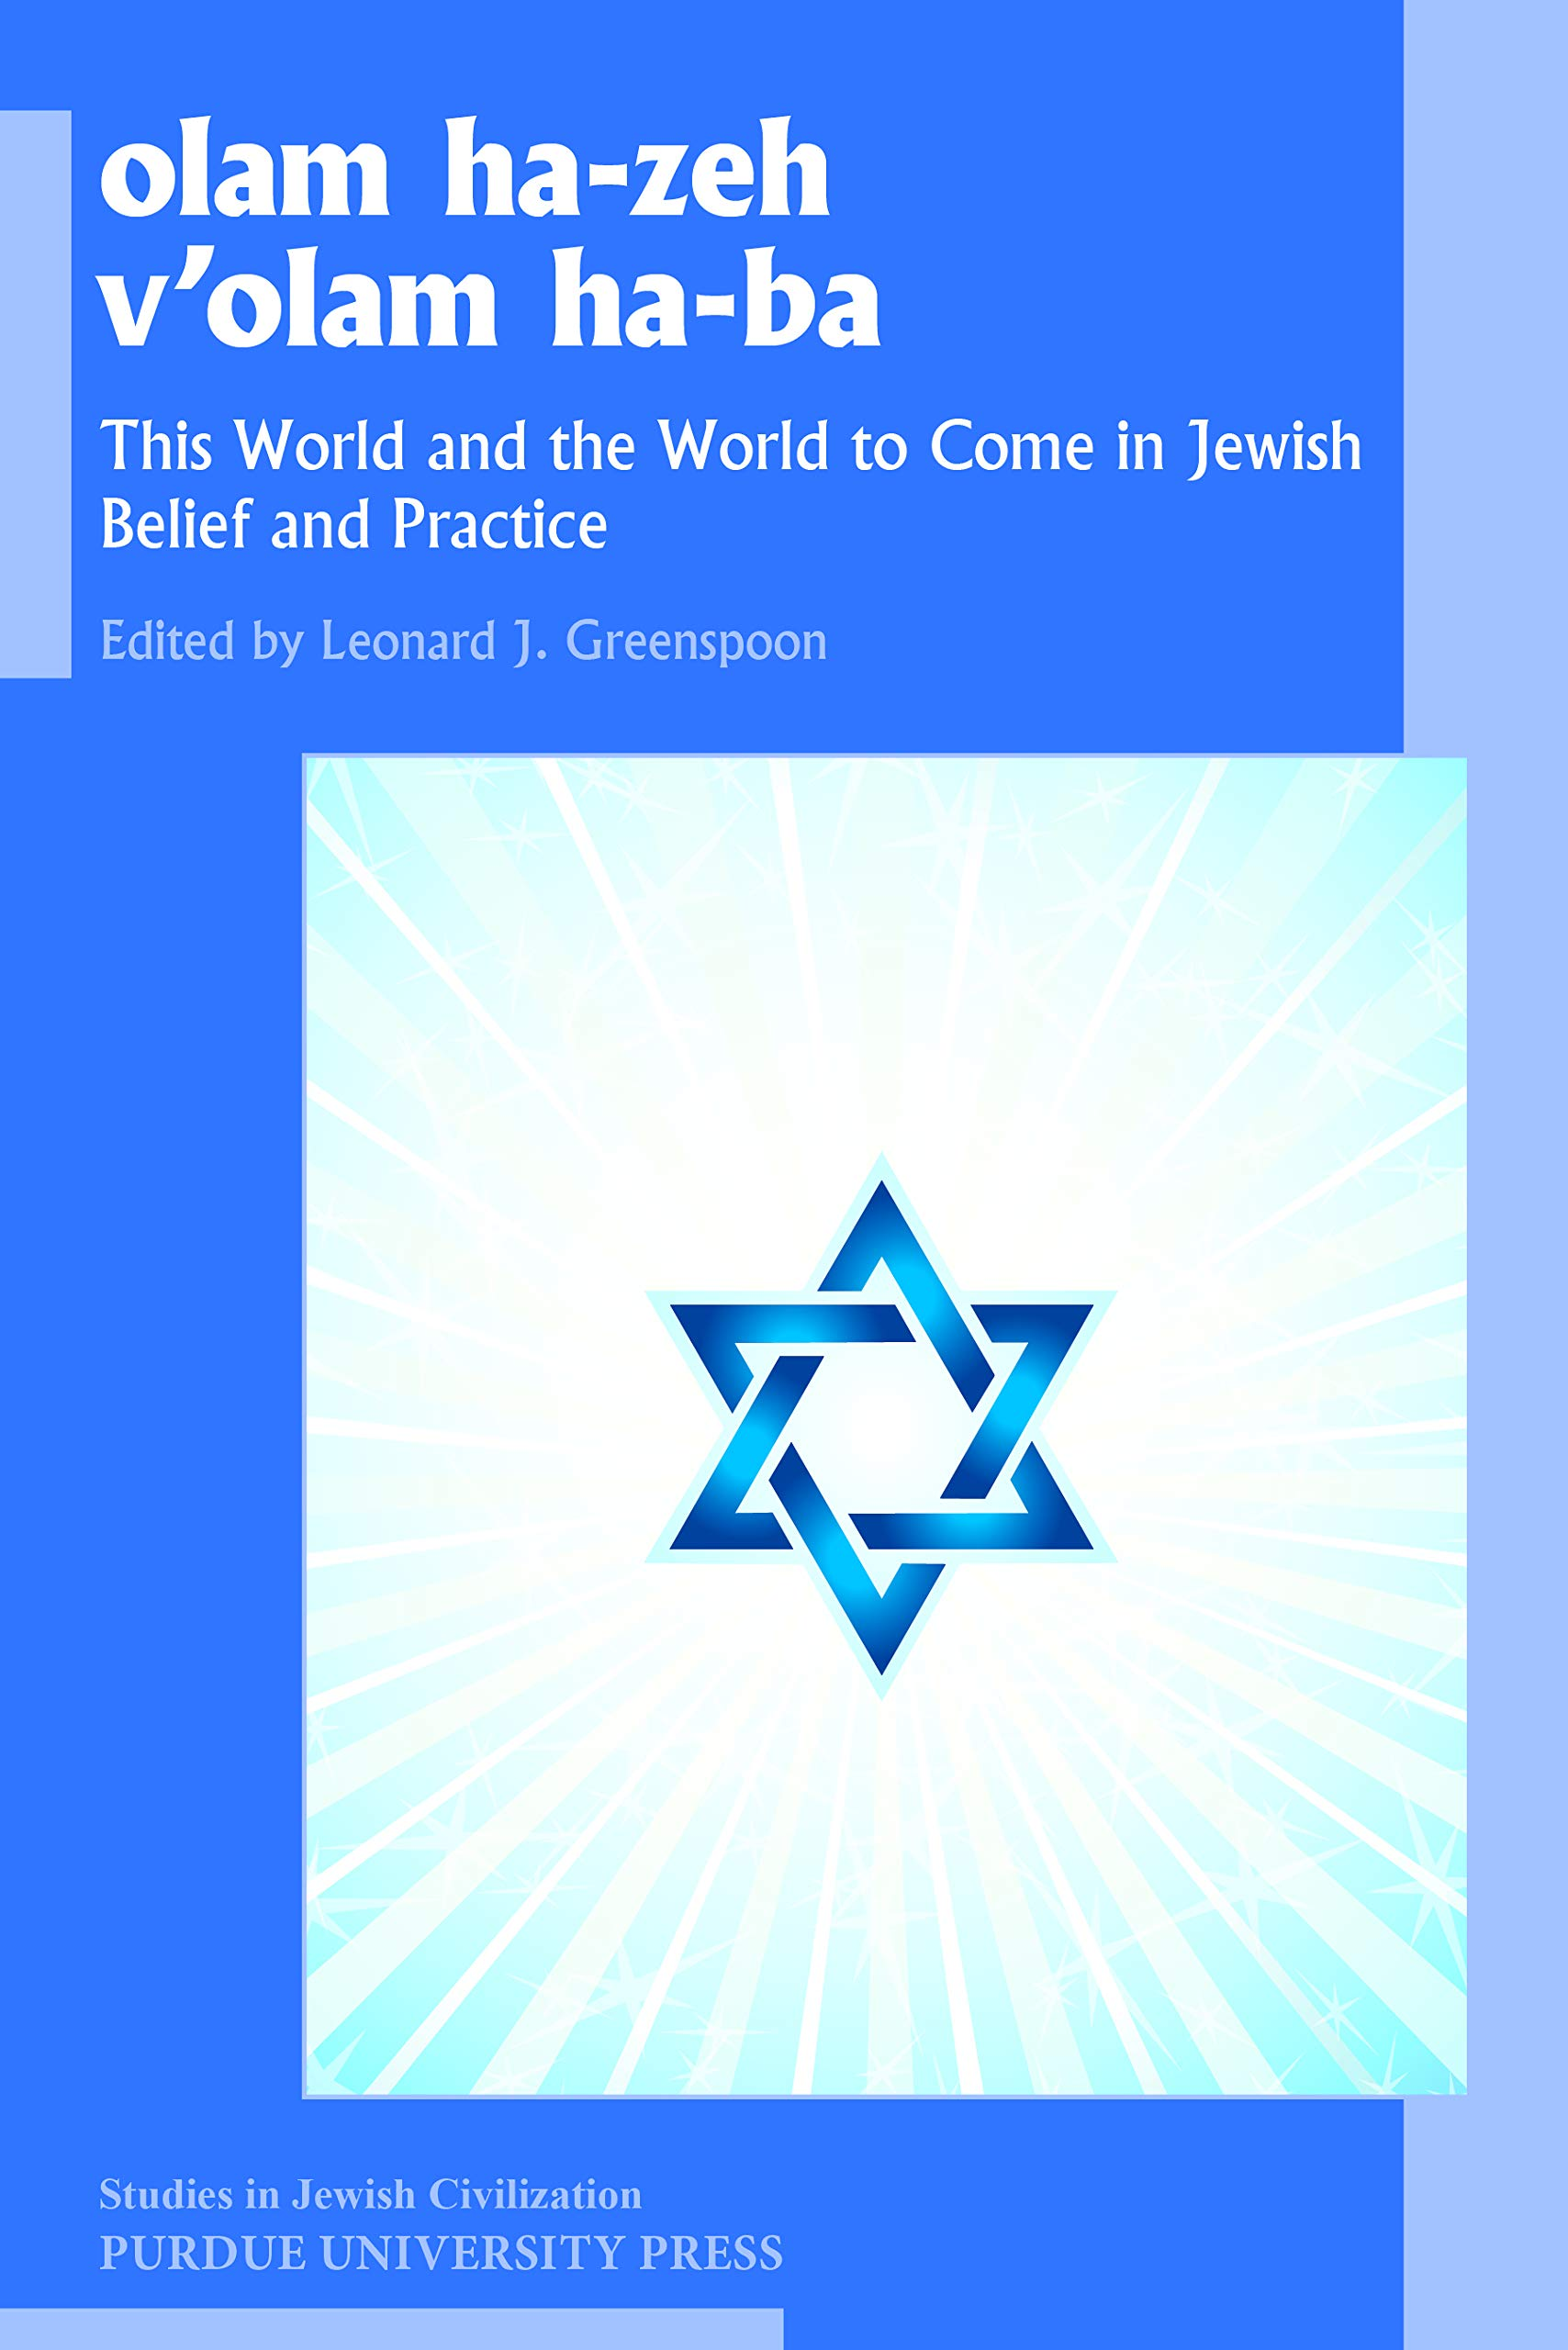 olam ha-zeh v'olam ha-ba: This World and the World to Come in Jewish Belief and Practice (Studies in Jewish Civilization) pdf epub